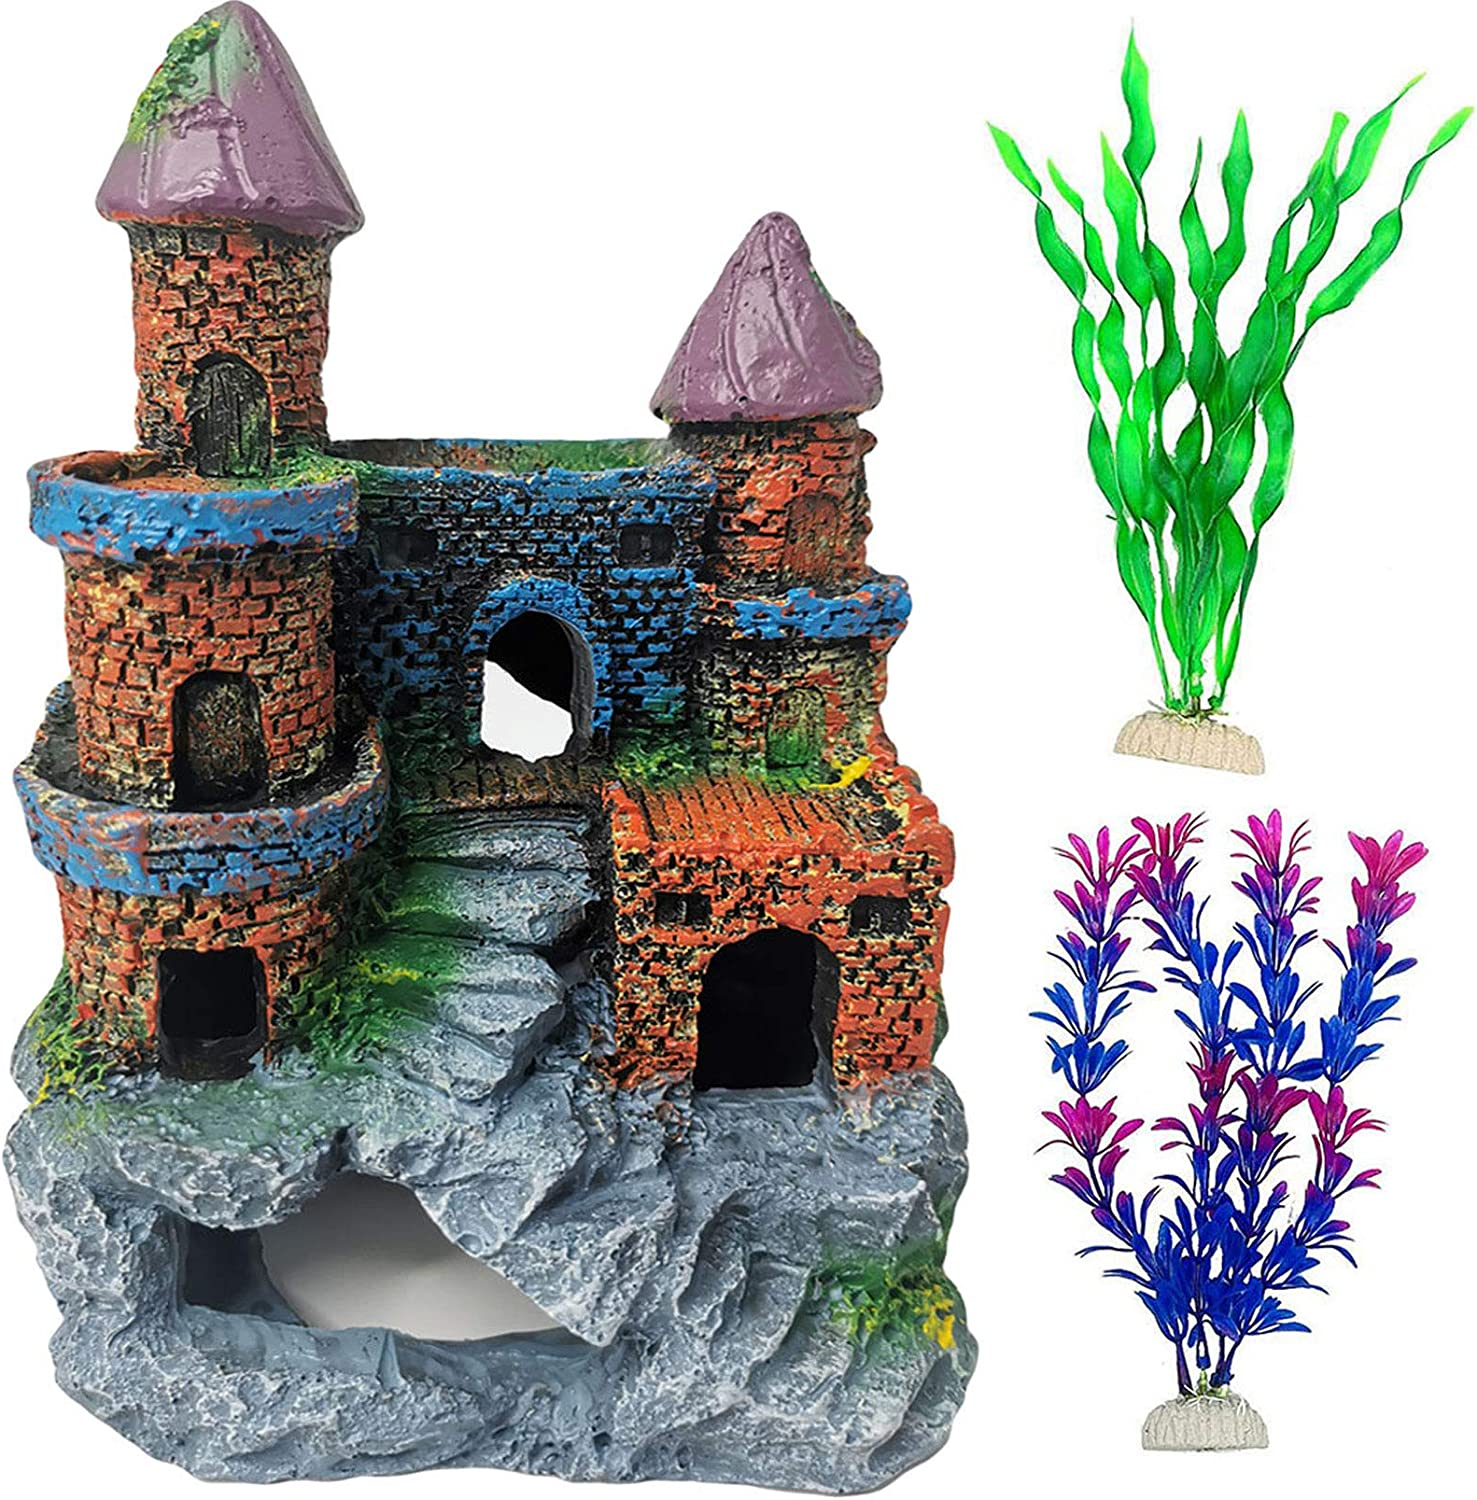 PINVNBY Castle Aquarium Decorations Resin Fish Tank Ornament Betta Hideout House Simulation Roman Column Decor with Artificial Aquatic Plants for Tiny Fish Swim Through (Roman Column)